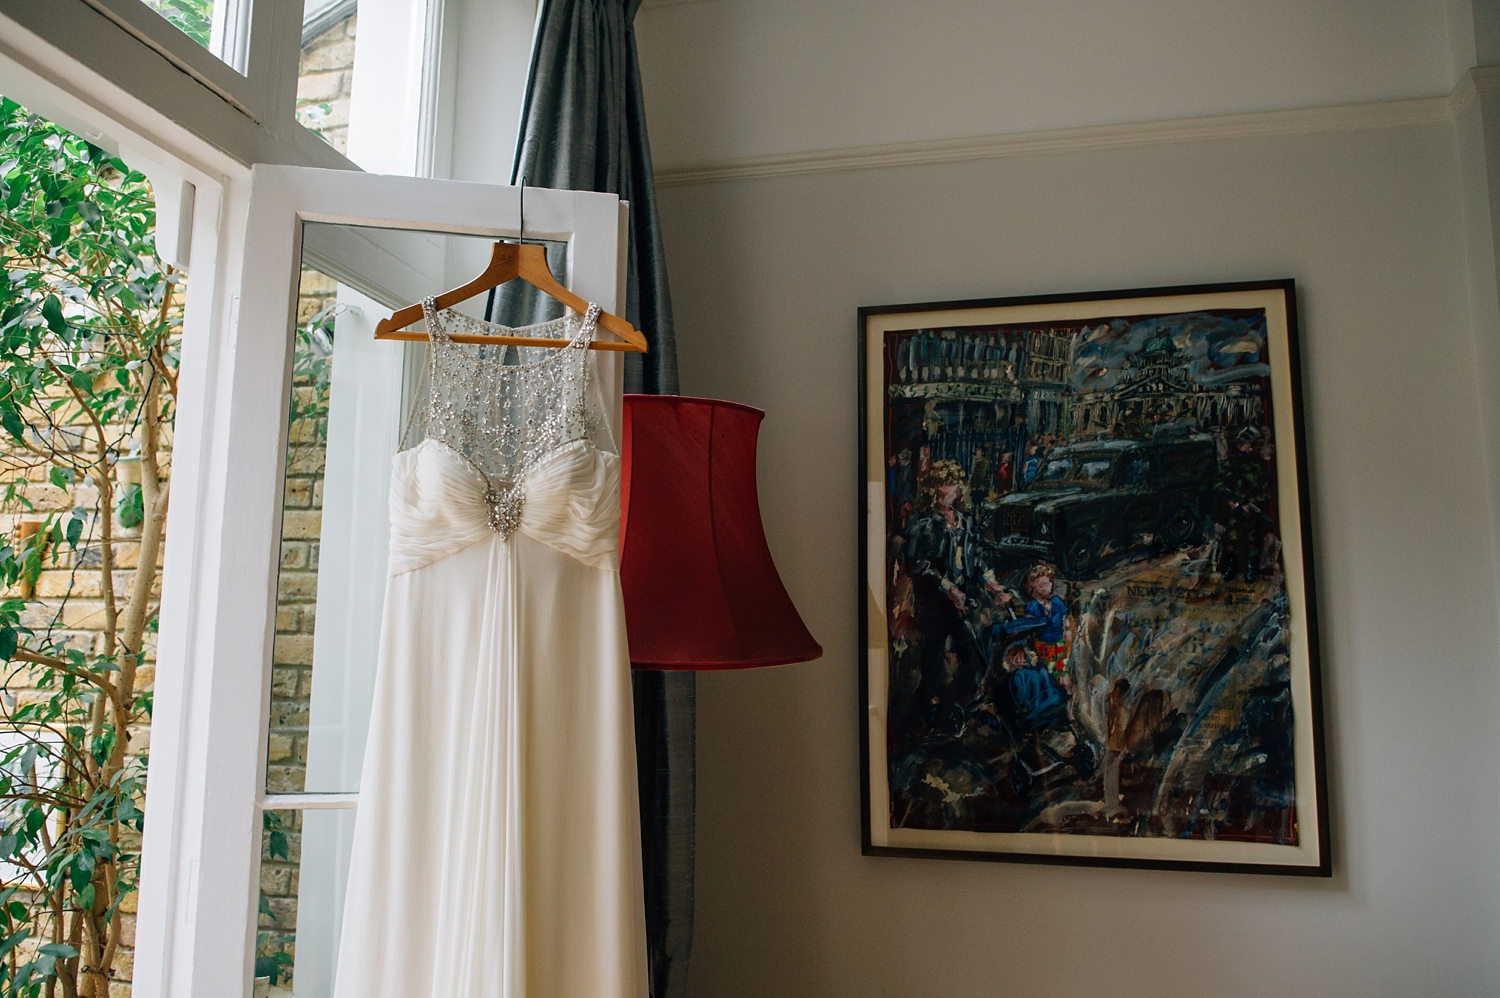 0011-lisa-devine-alternative-wedding-photography-london-hackney-dalston-london-photography-townhall-hotel.JPG